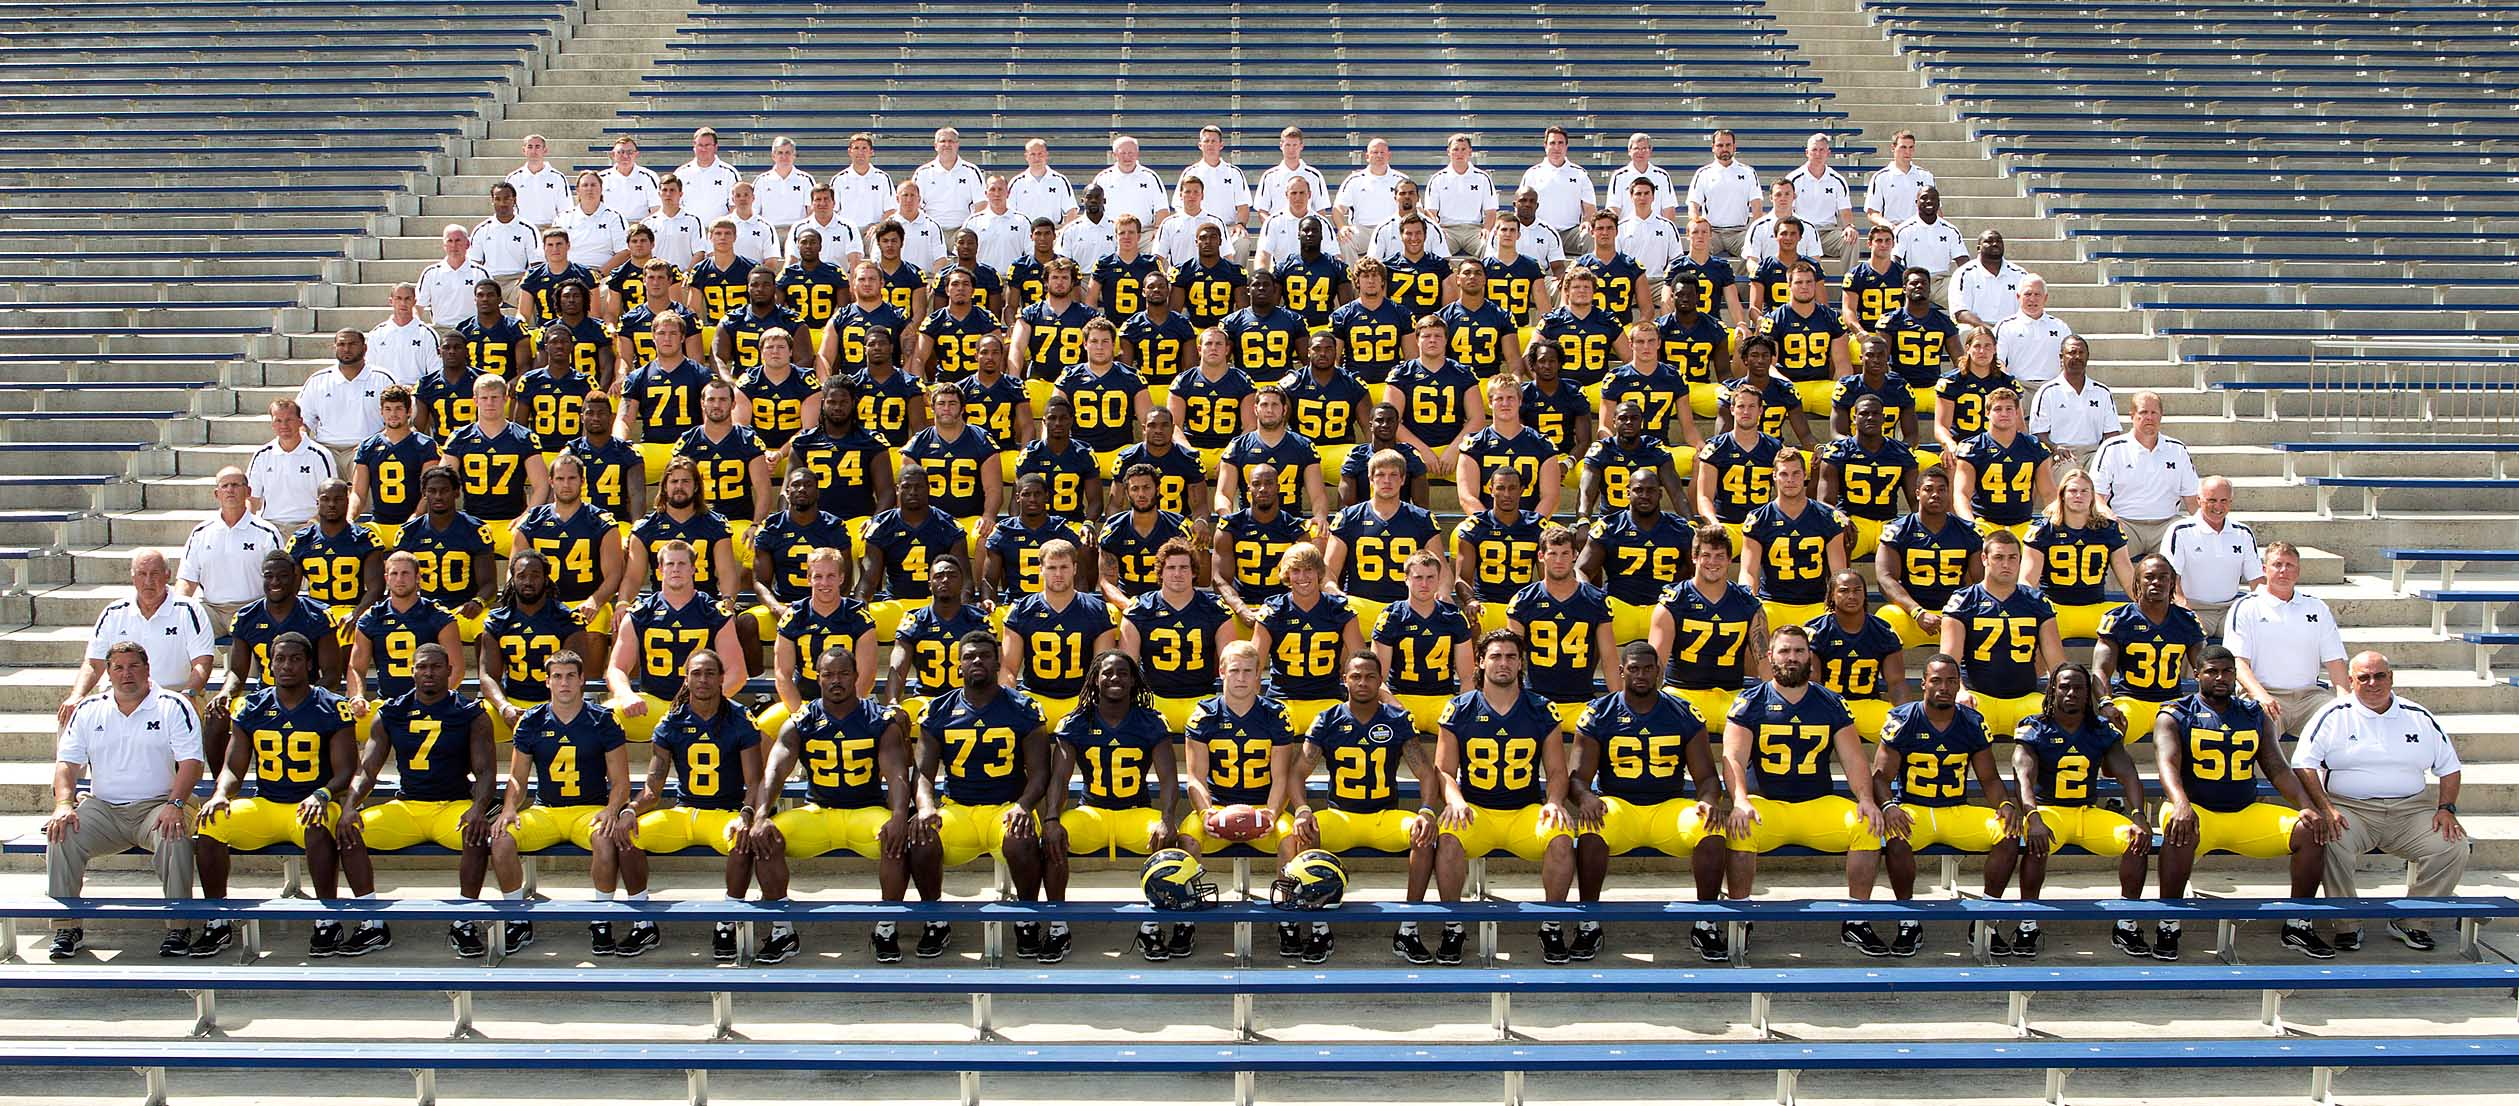 Michigan University Football Roster 2012 Clinic